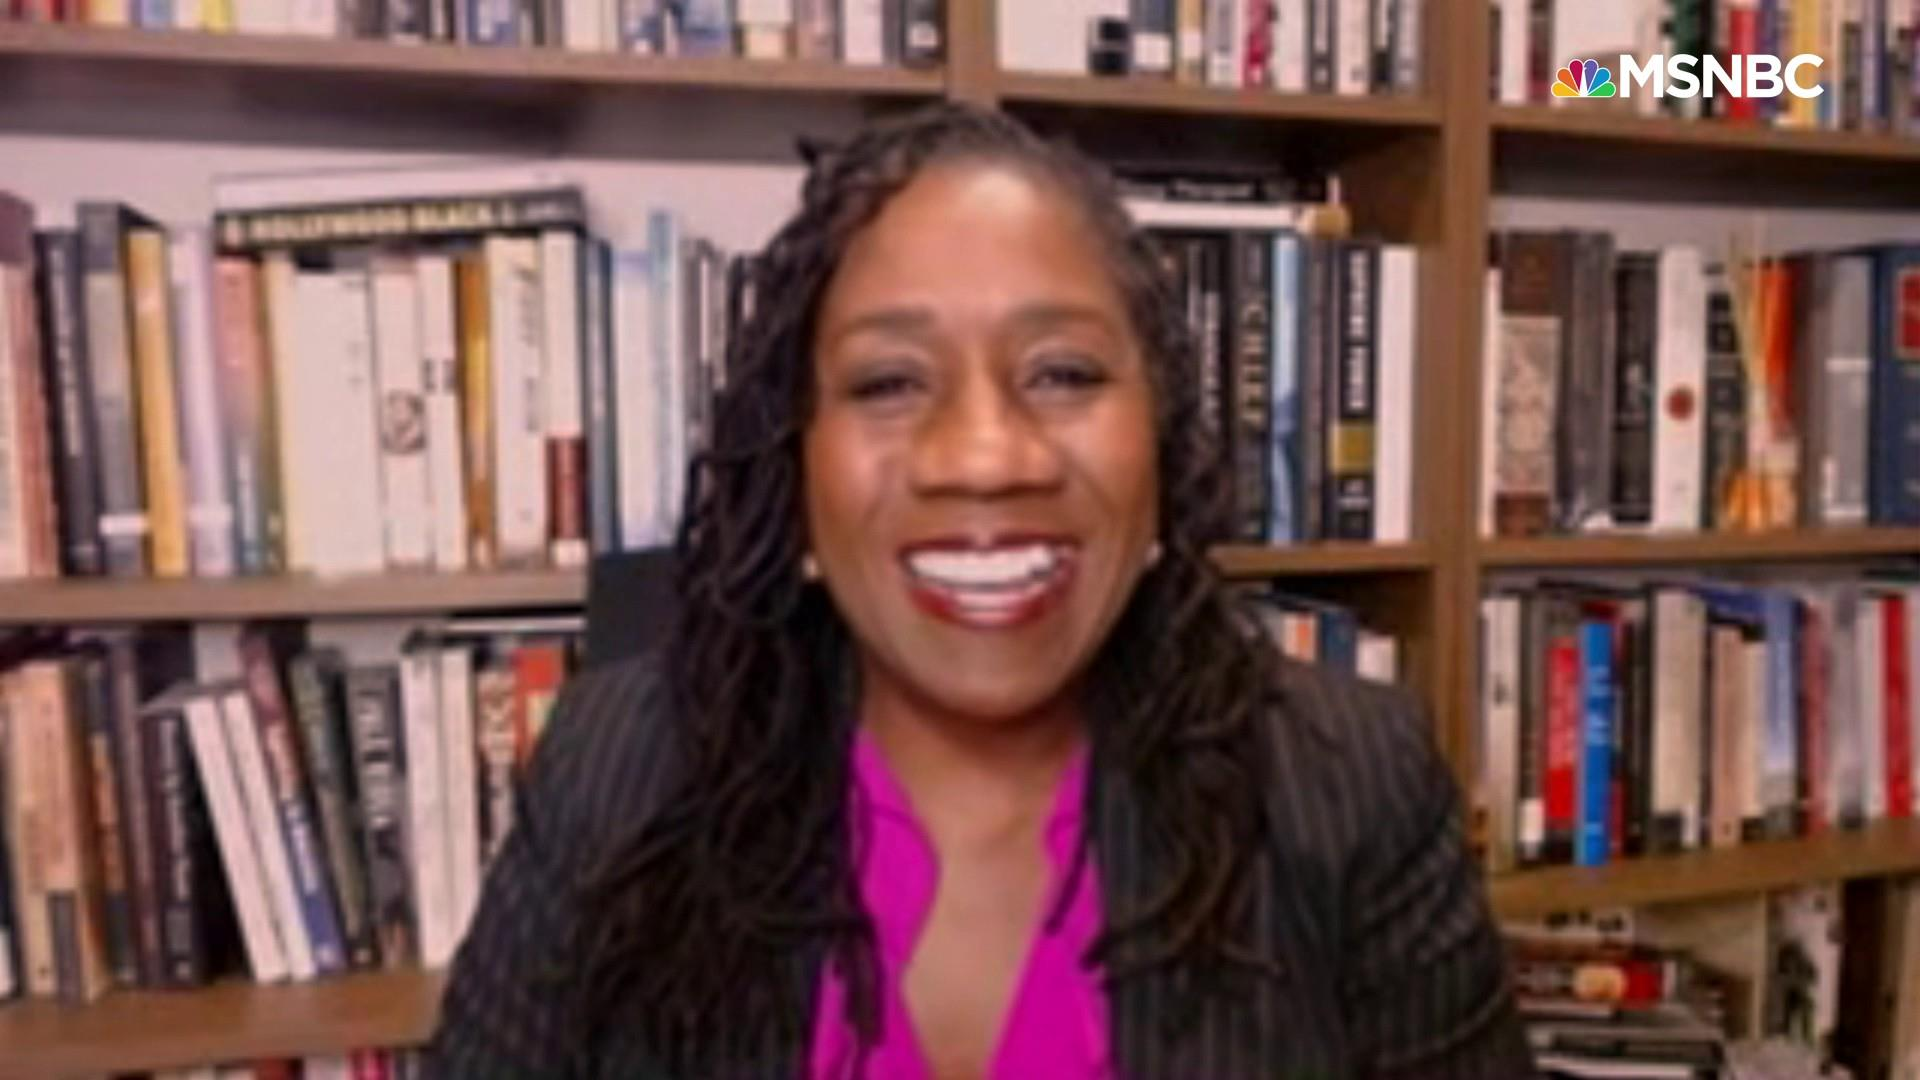 'It's big to admire your name on immediate lists': Sherrilyn Ifill acknowledges SCOTUS rumors